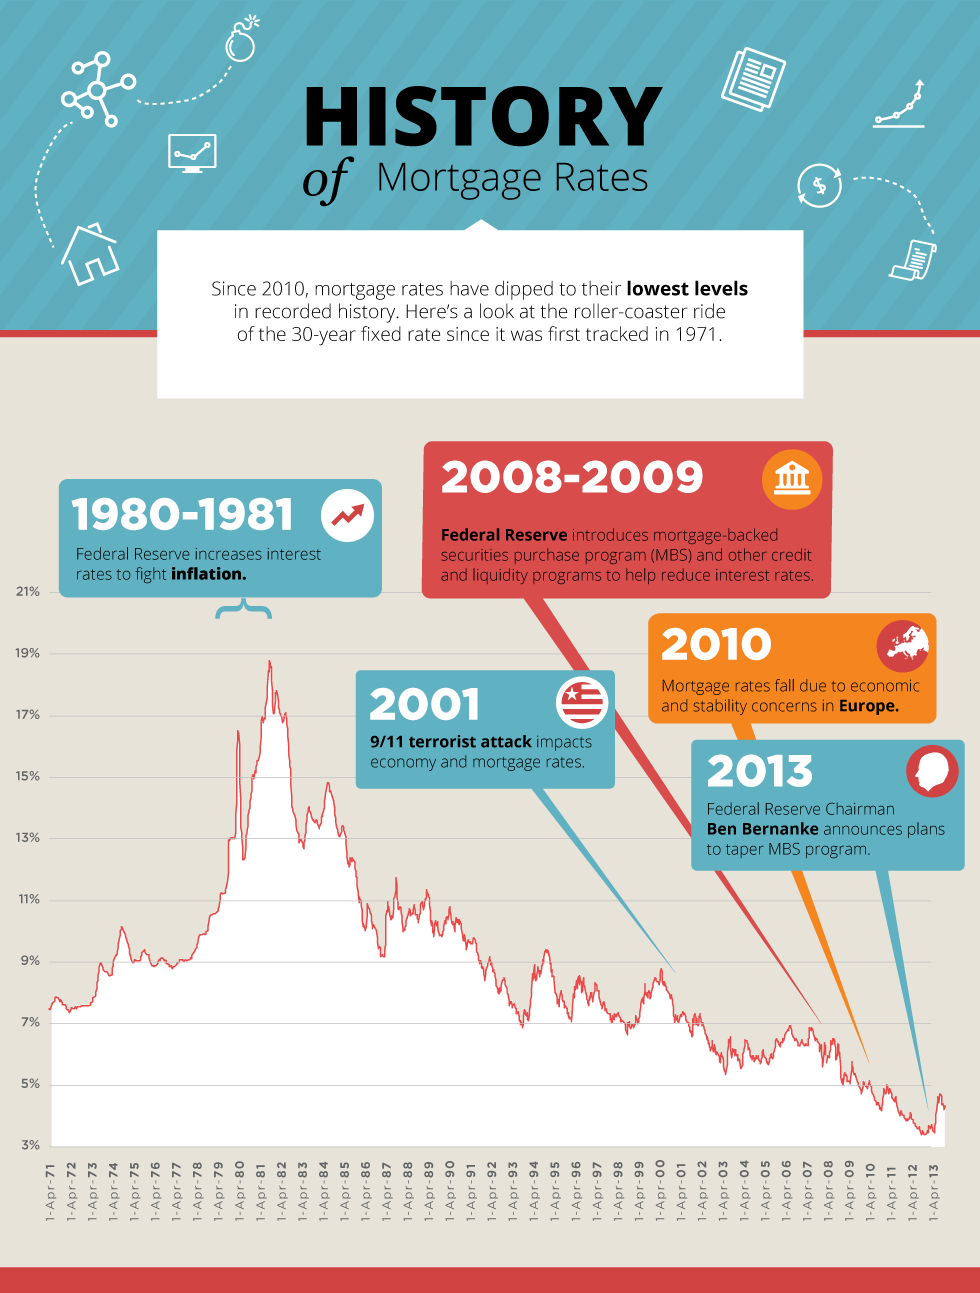 HistoryofMortRates_Infographic_g_03-dae9d2